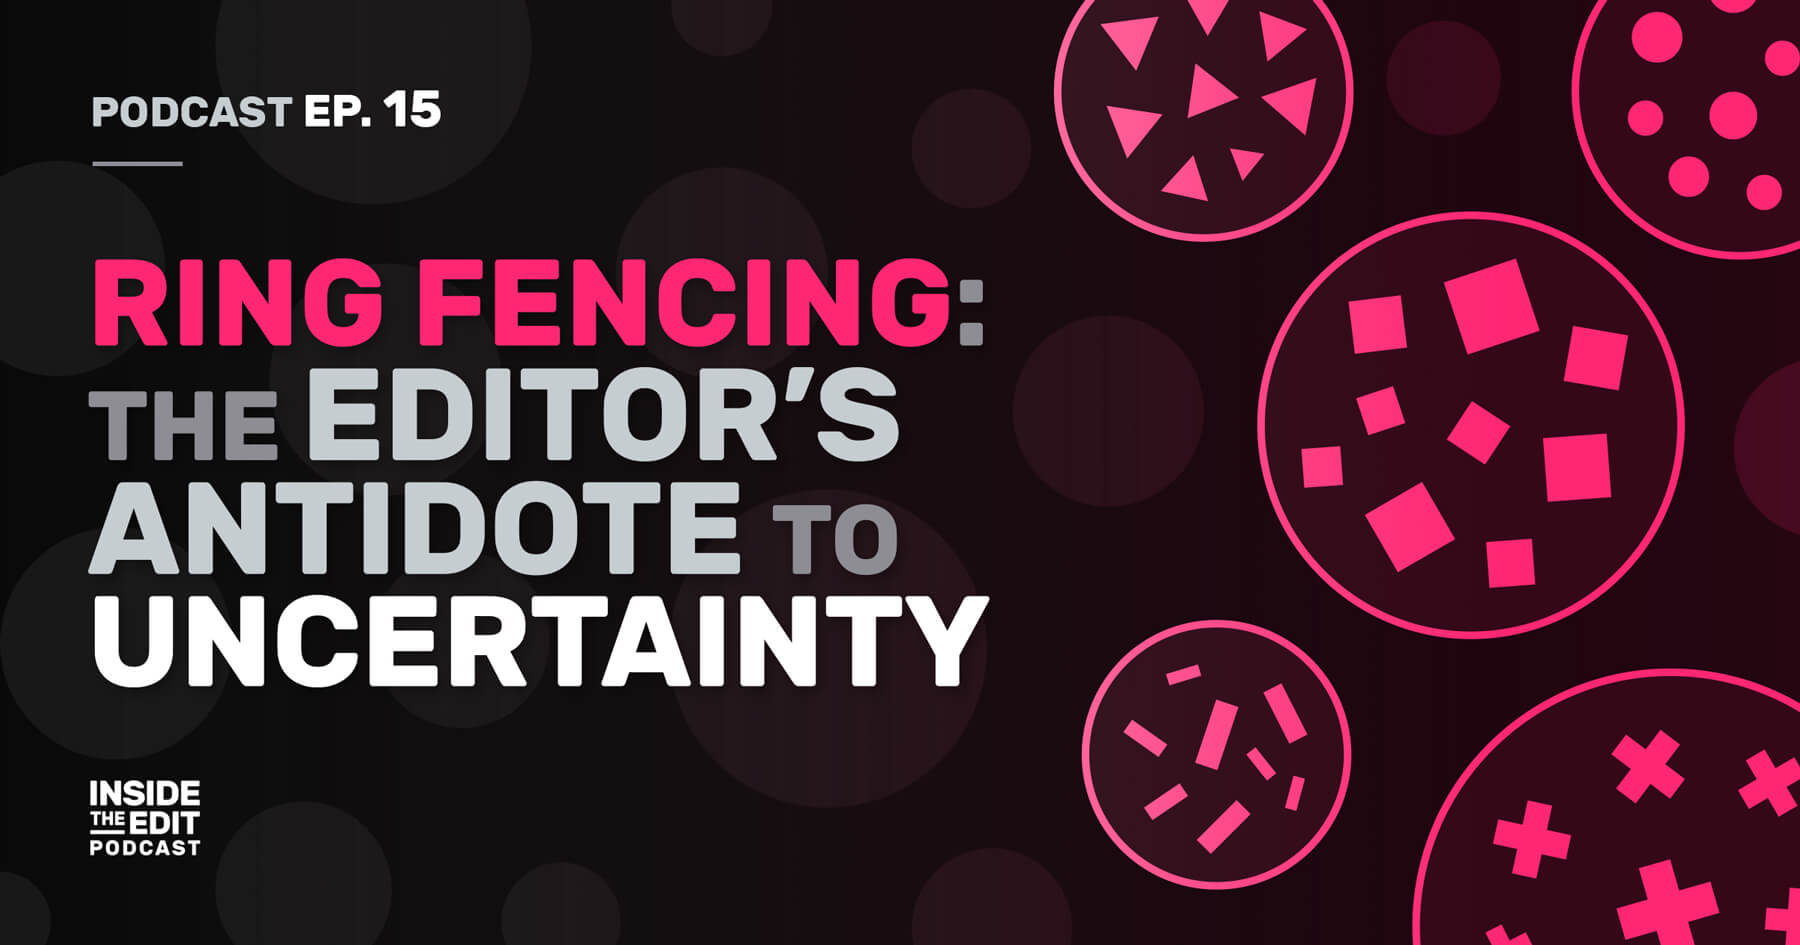 Ring Fencing: The Editor's Antidote to Uncertainty